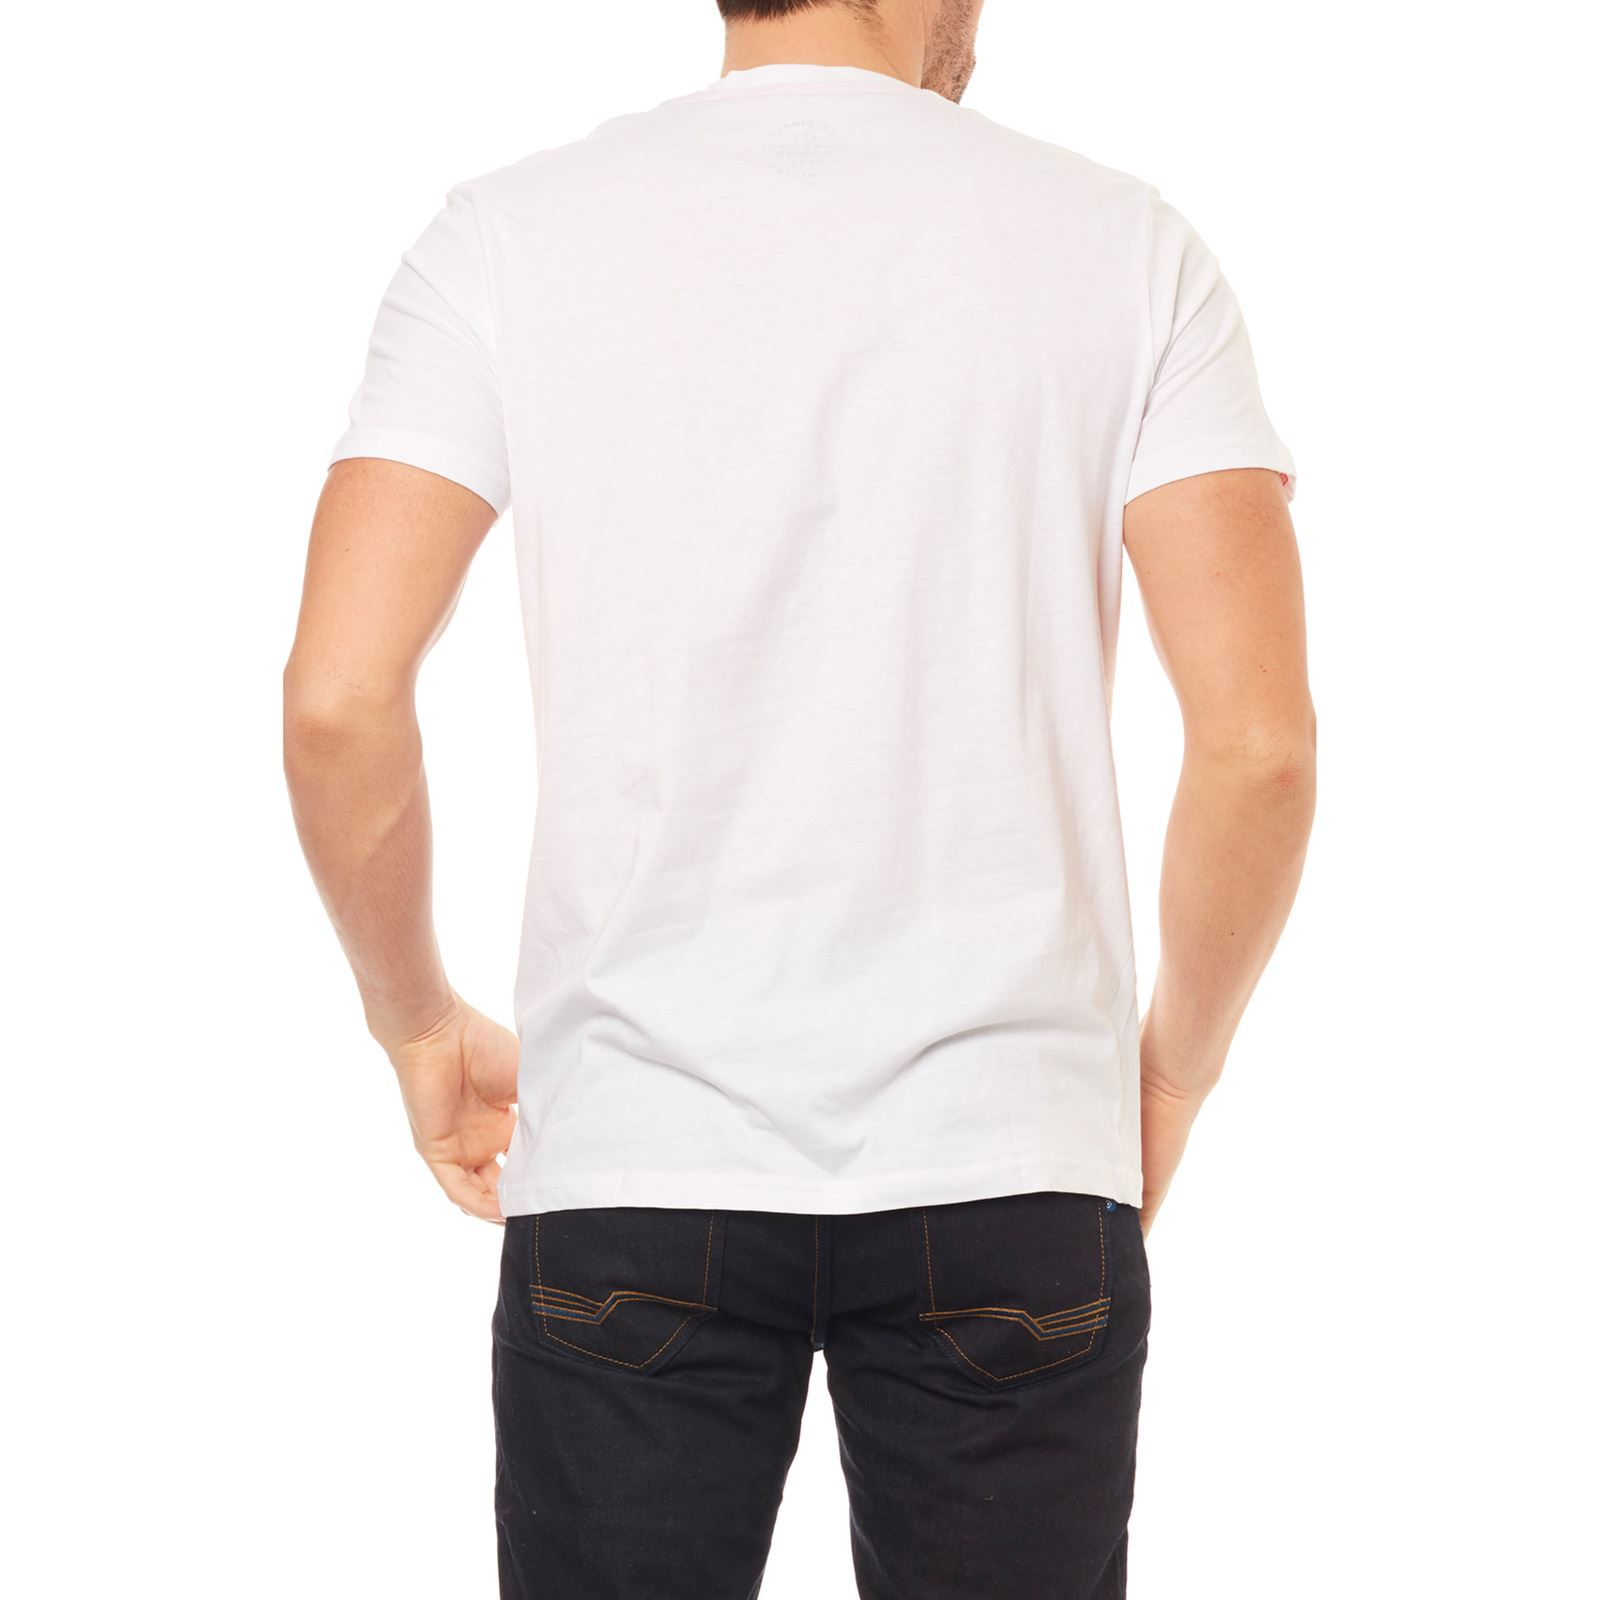 Blanc shirt Jorshakedowns Courtes Manches Jack T amp; Jones IO4xq0R